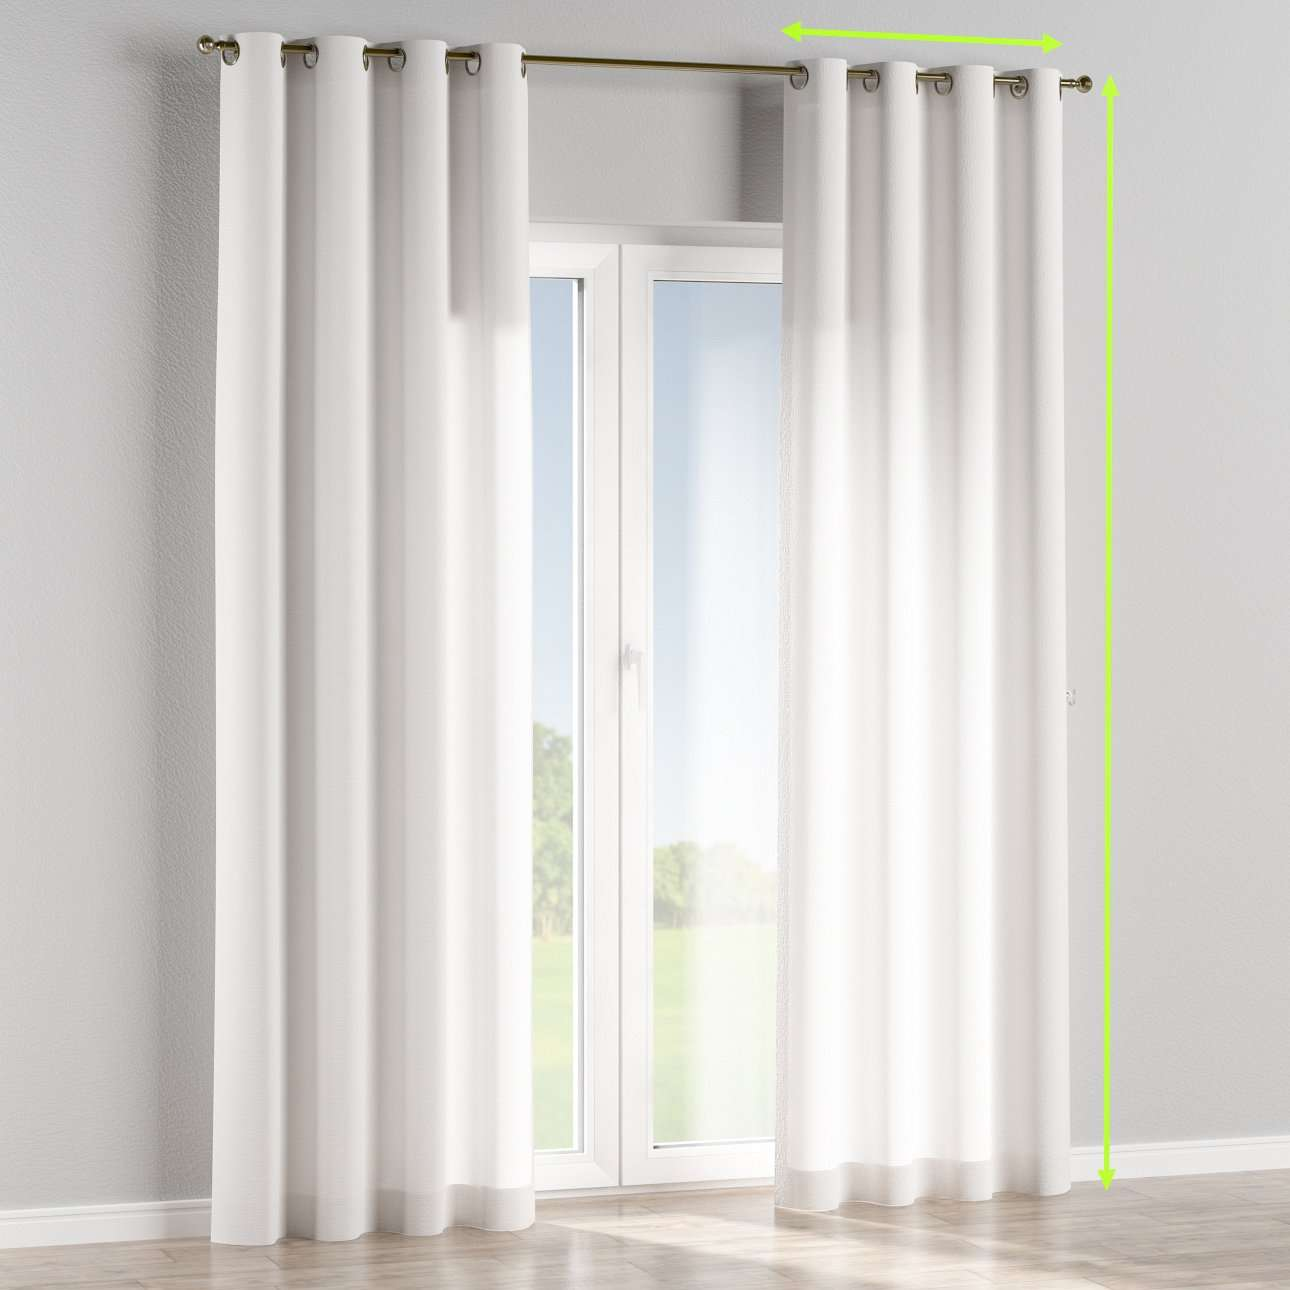 Eyelet lined curtains in collection Loneta , fabric: 133-02